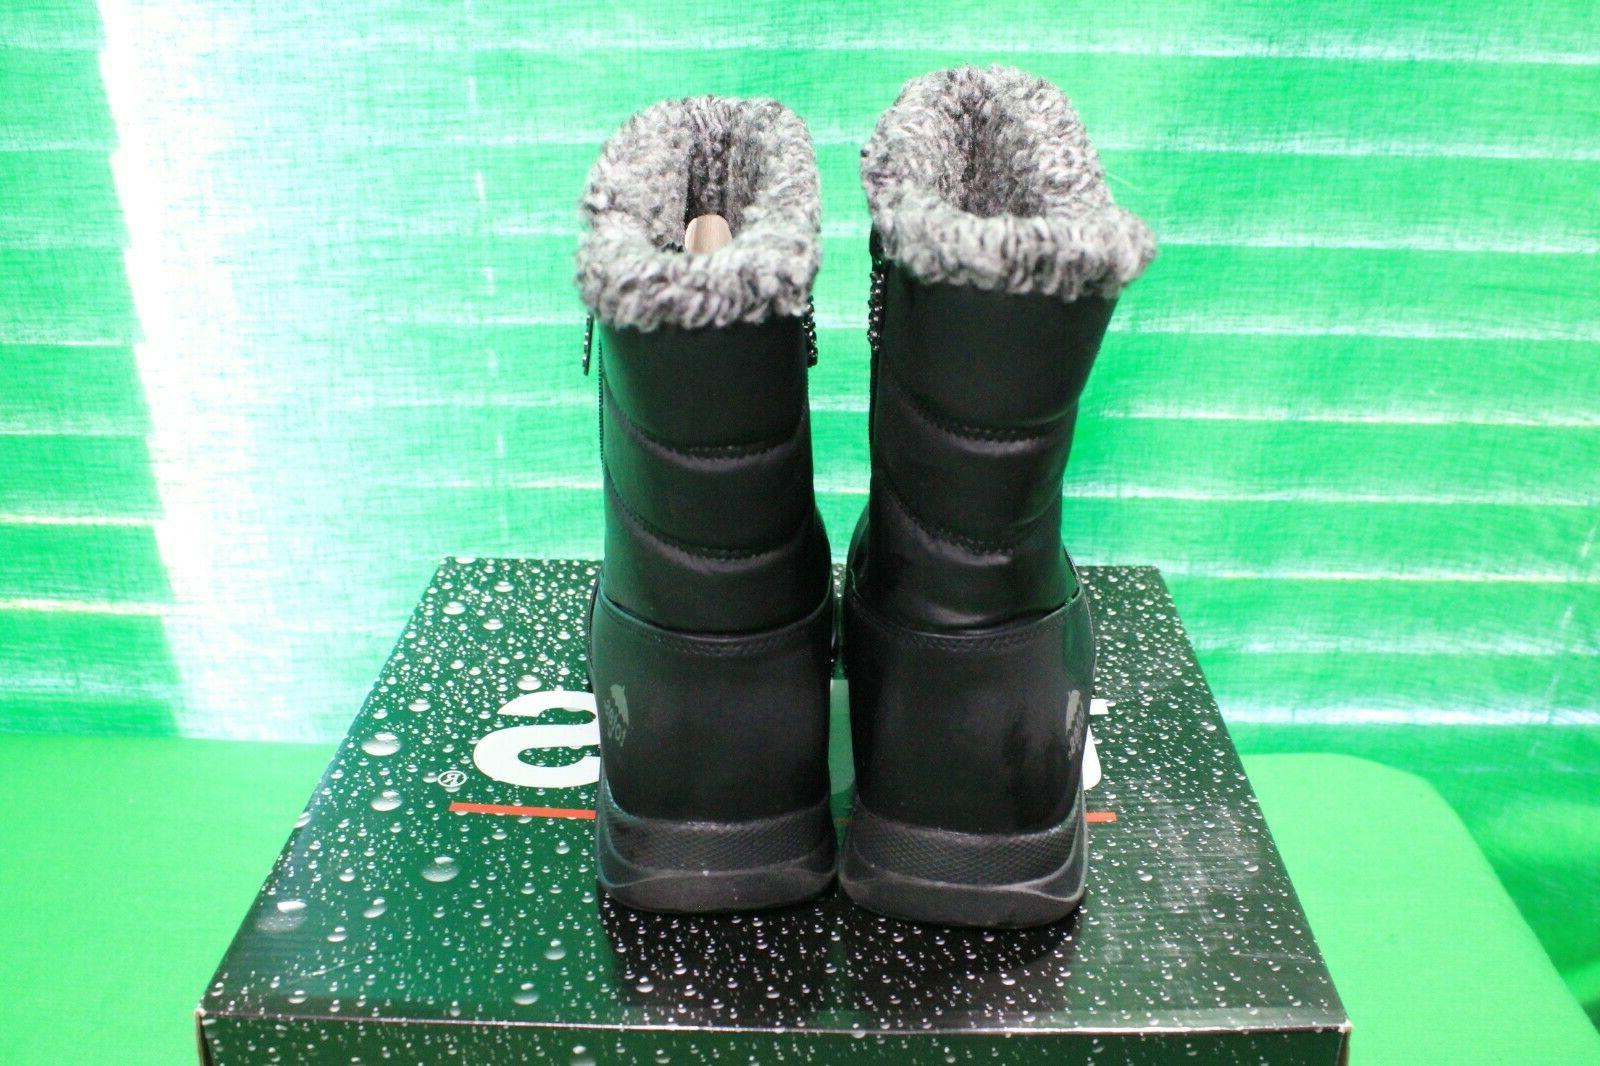 Women's Babbie boots, Winter Boots,lined, Black, Size Med